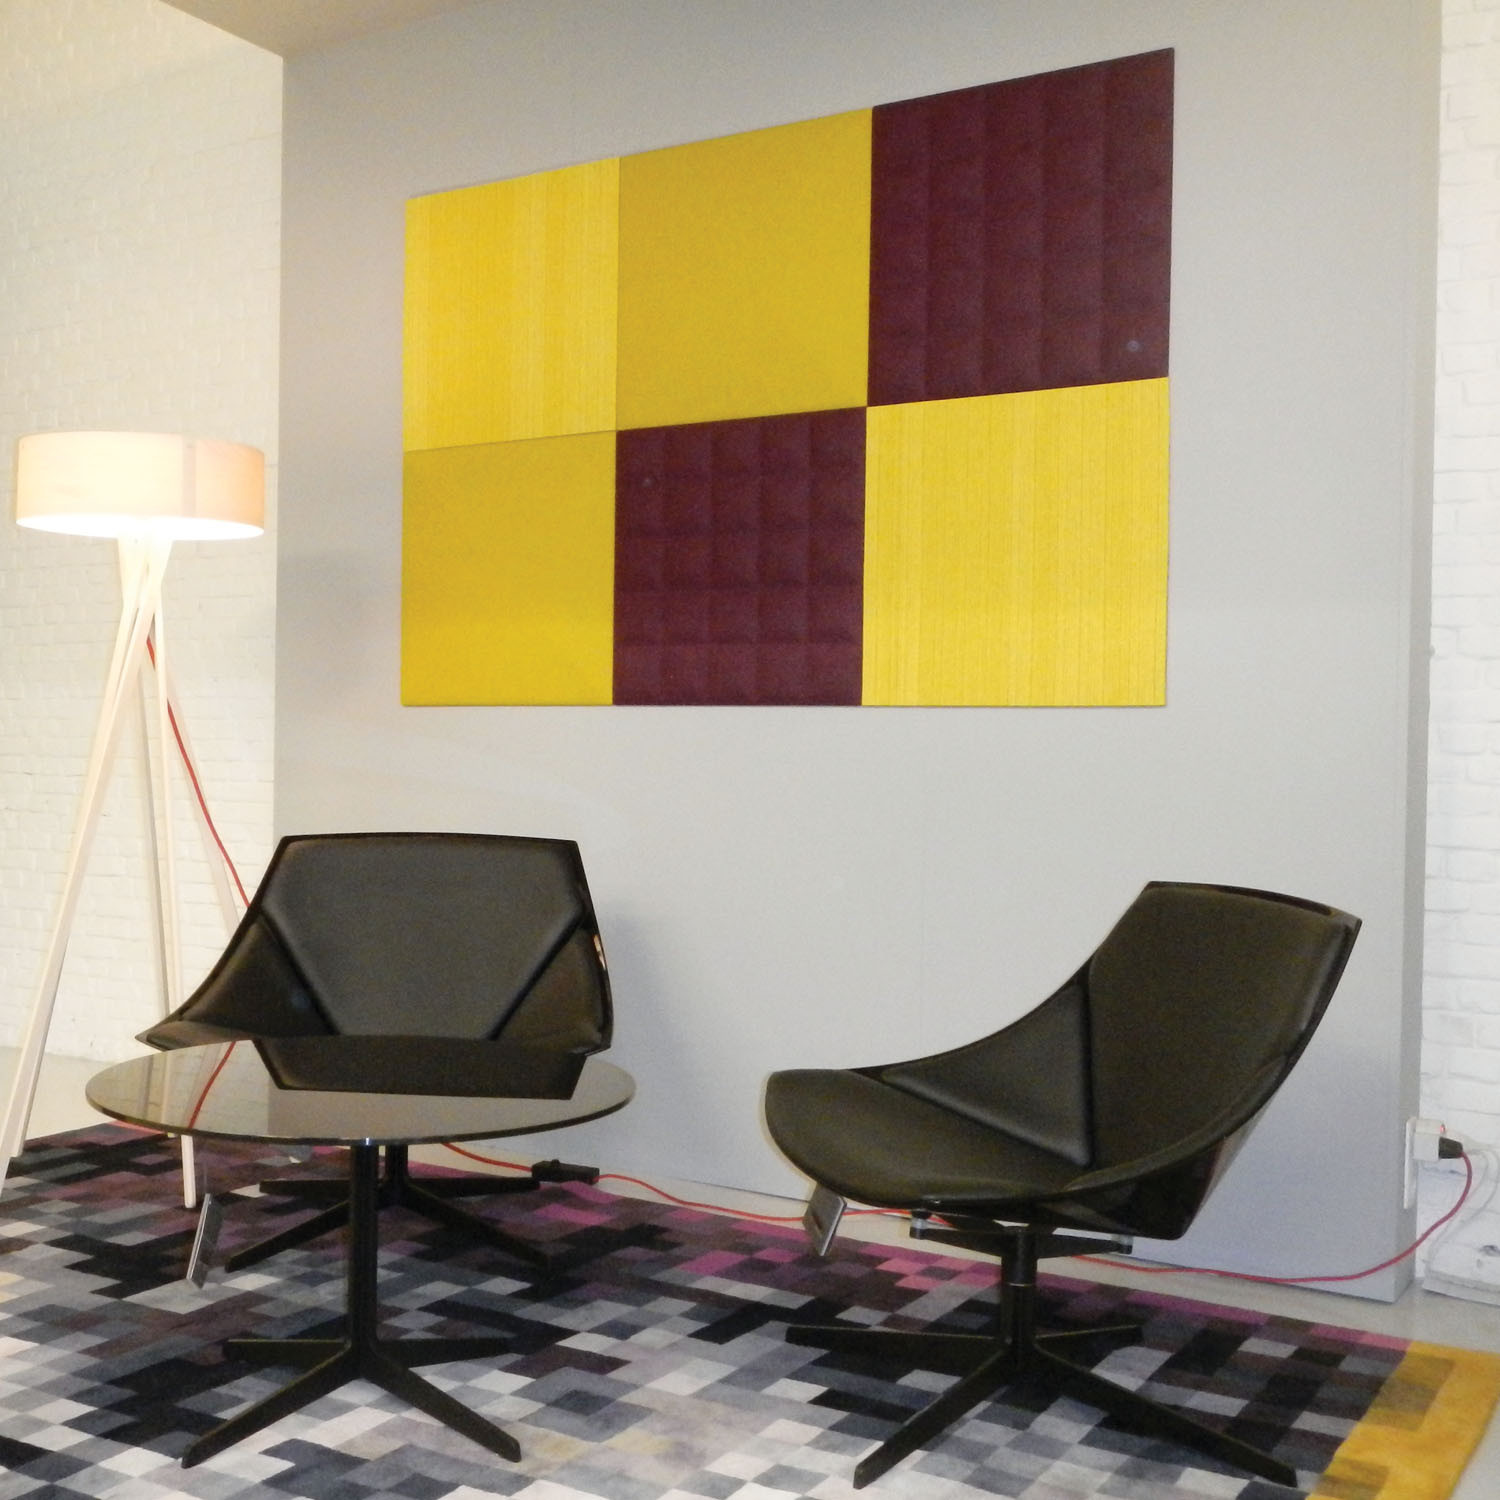 BuzziTile 3D Acoustic Wall Panels by BuzziSpace